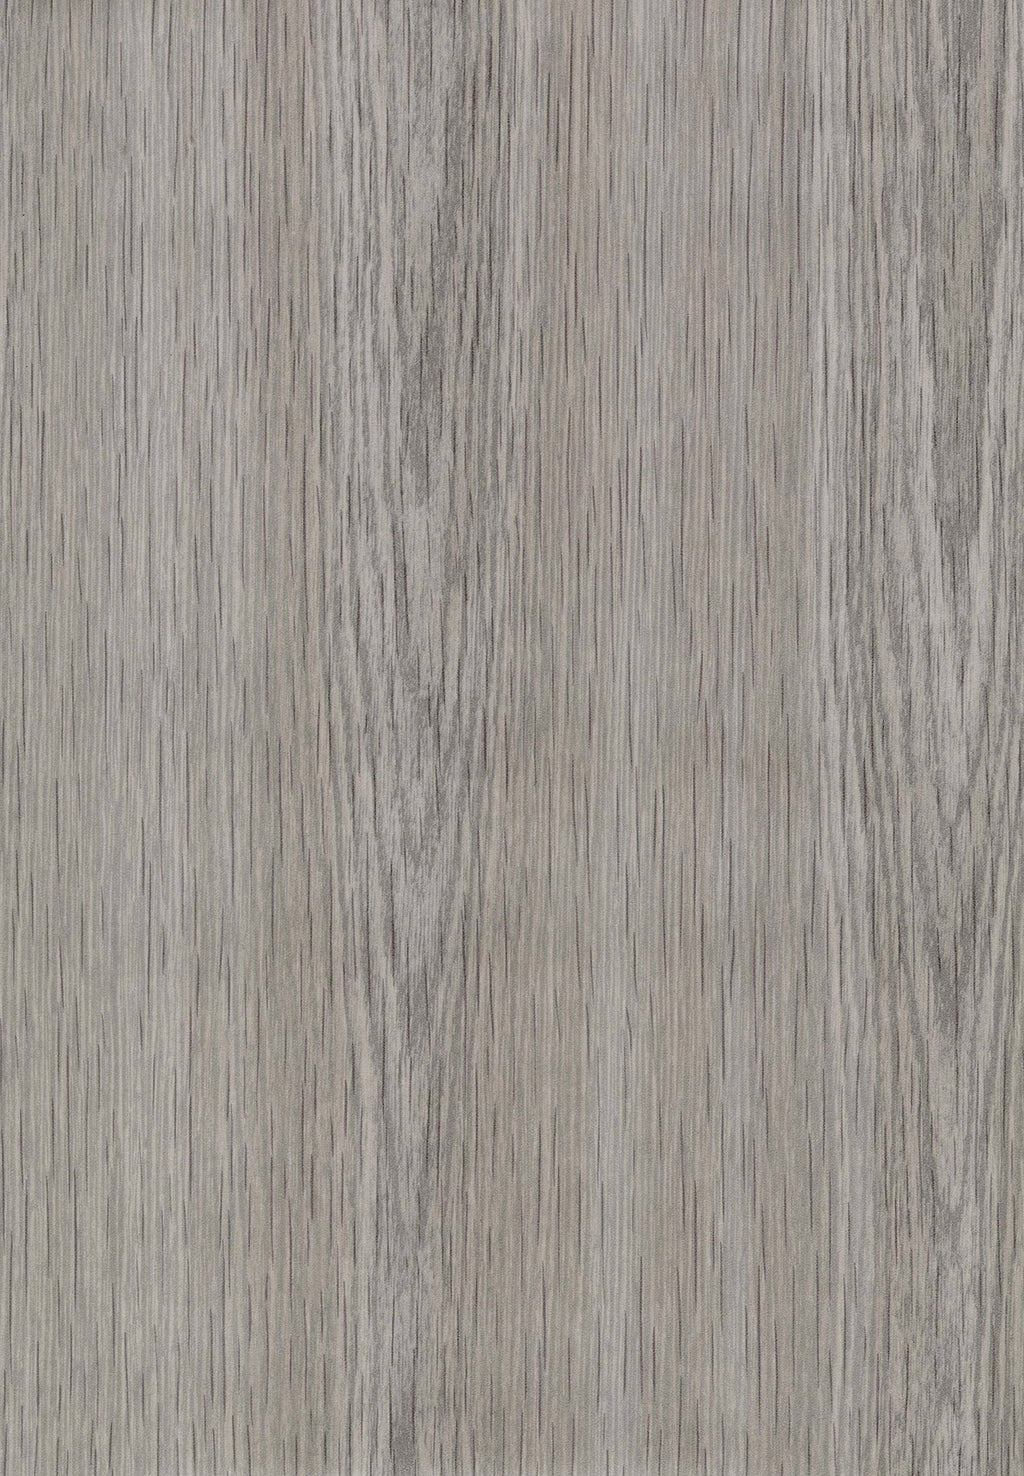 Oak Taupe Adhesive Film wood inspired design looks both realistic and rustic.